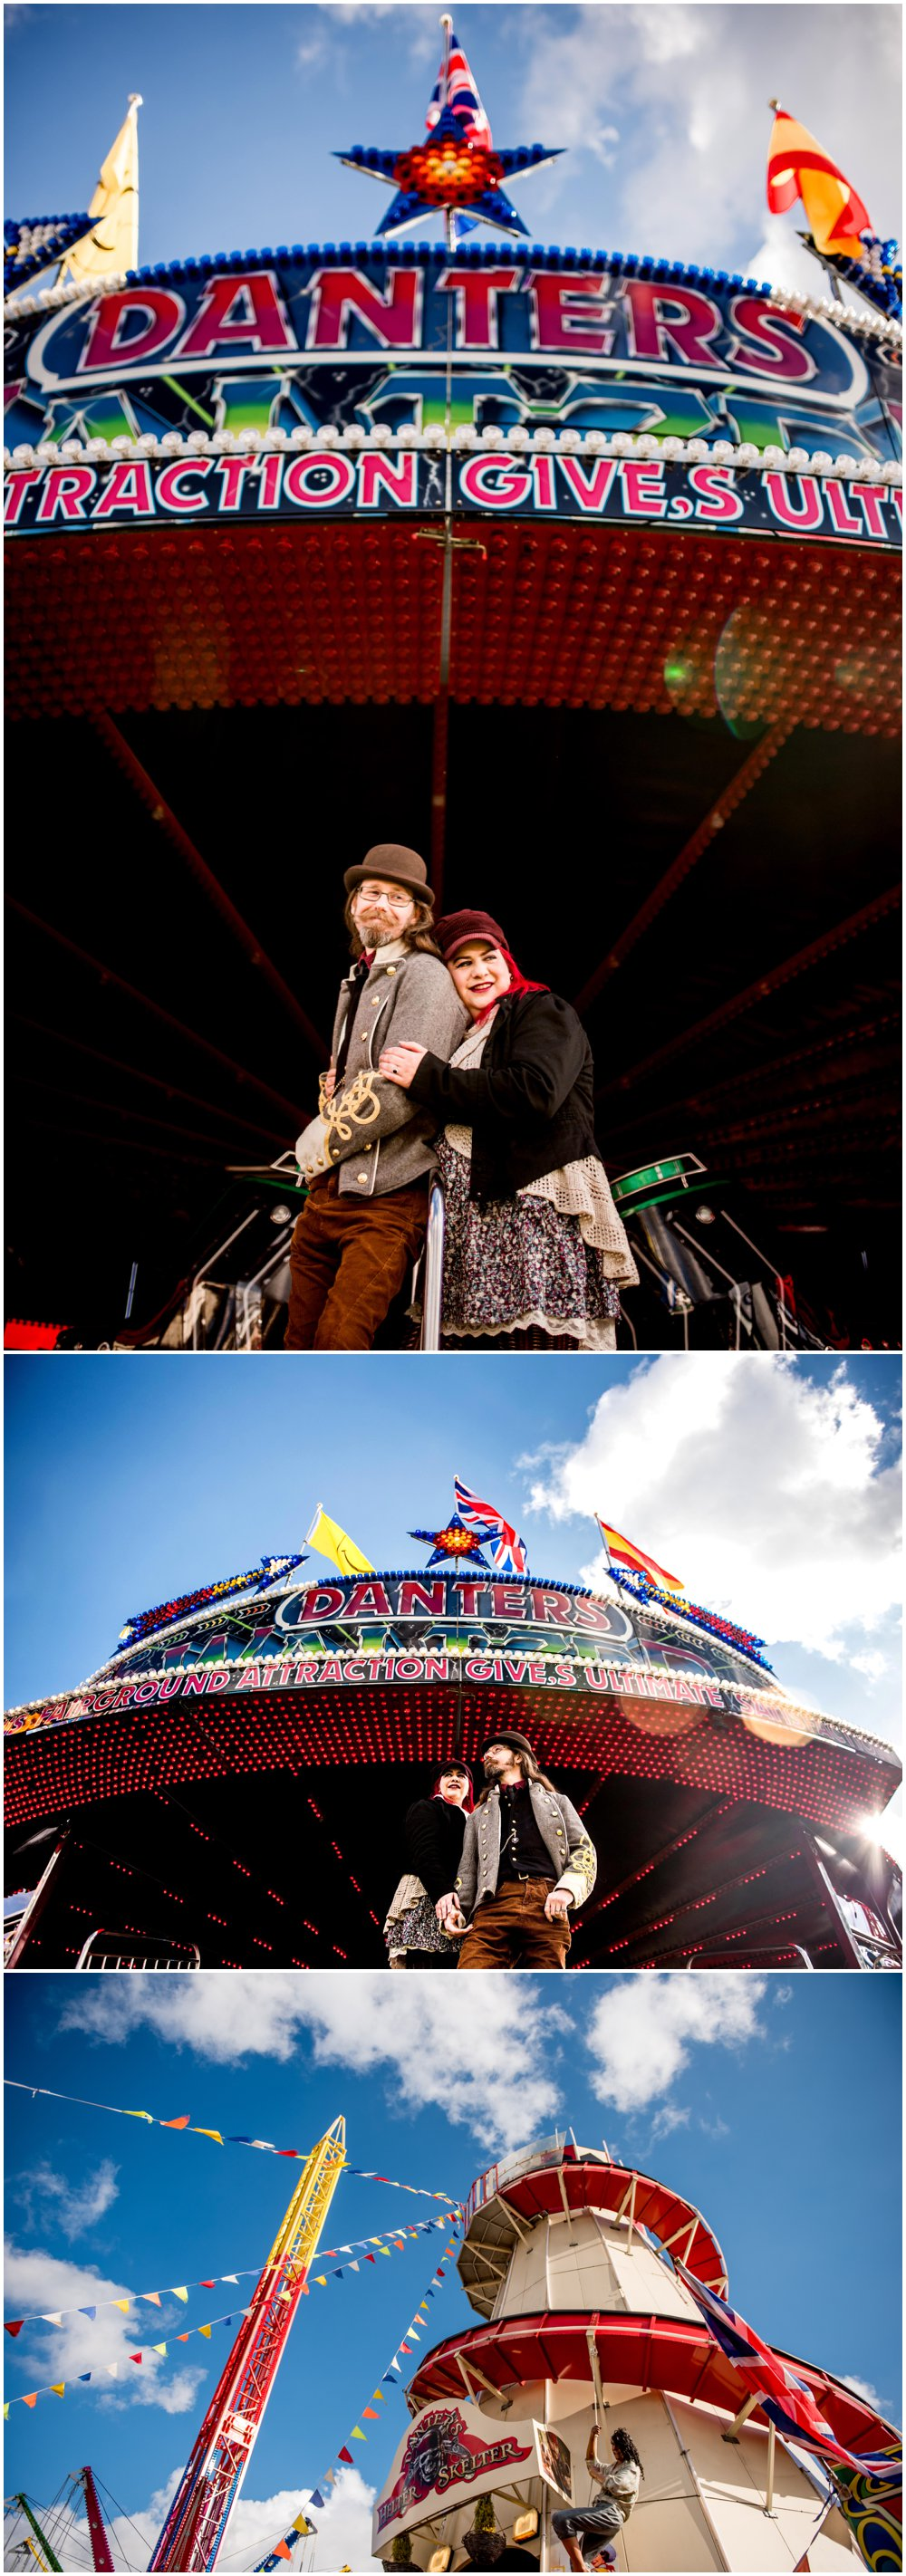 Fay and Michael's engagement shoot at Treasure Island Amusement Park Fairground in Stourport along the banks of the River Severn by Lisa Carpenter Photography, West Midlands and Birmingham based alternative wedding photographer